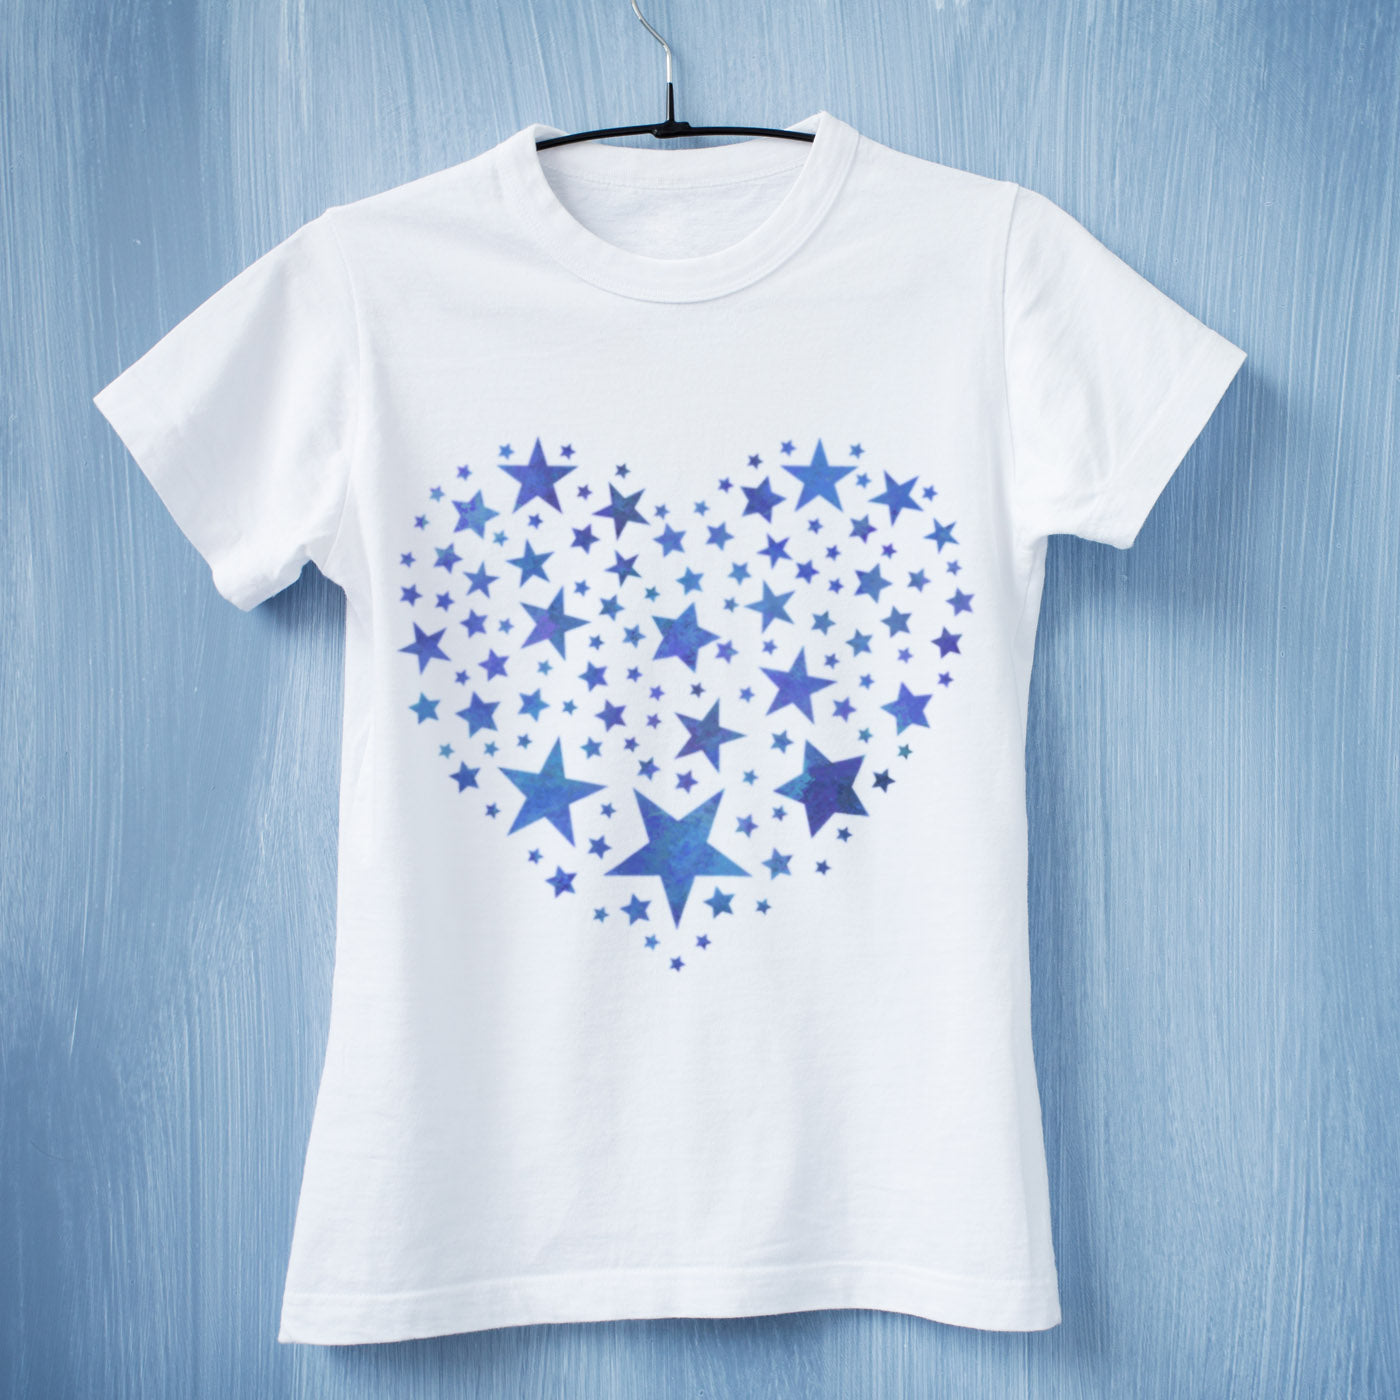 CraftStar Star Pattern Heart Stencil on Tshirt